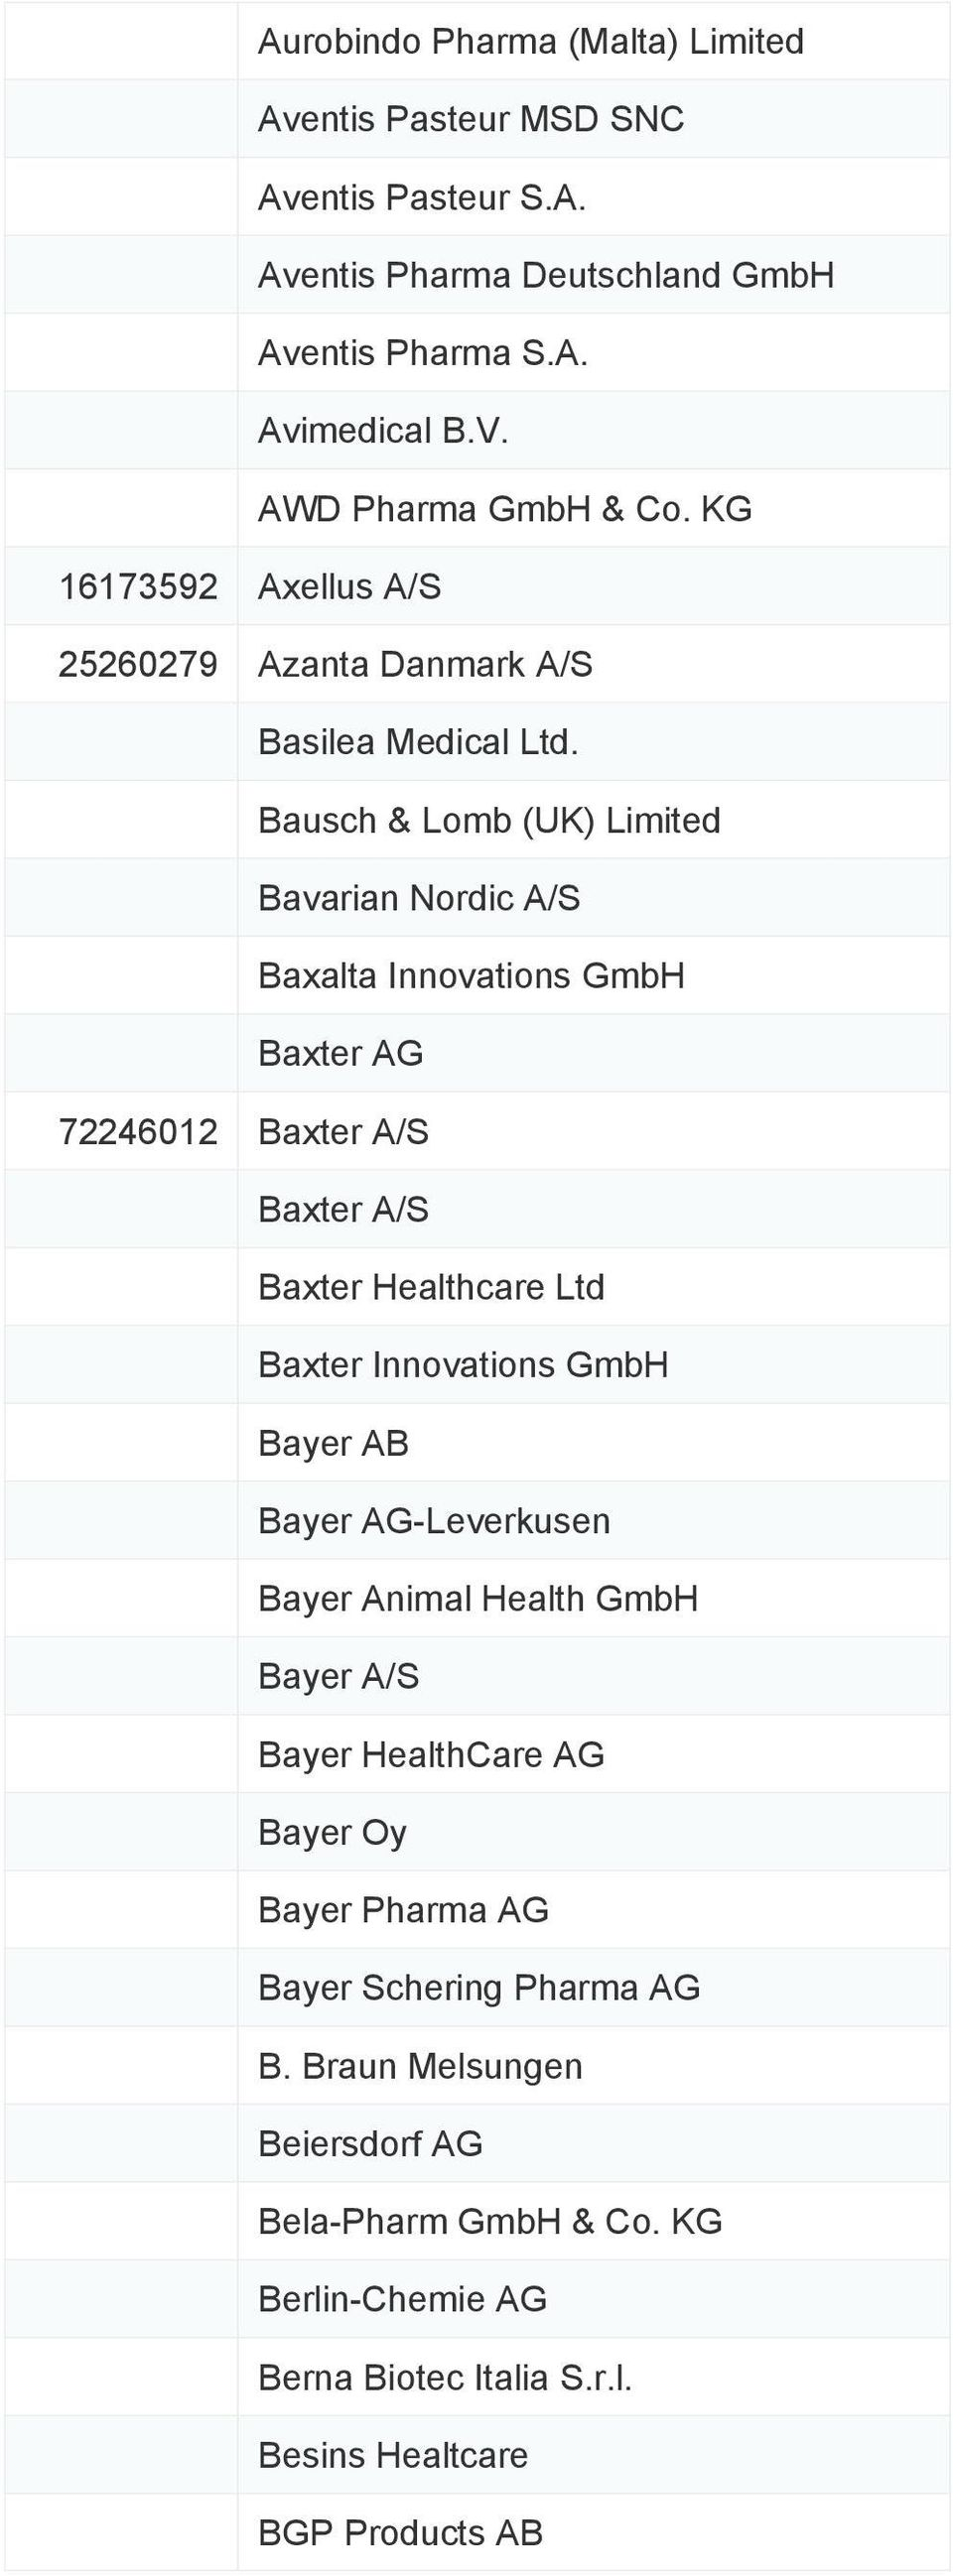 Bausch & Lomb (UK) Limited Bavarian Nordic A/S Baxalta Innovations GmbH Baxter AG 72246012 Baxter A/S Baxter A/S Baxter Healthcare Ltd Baxter Innovations GmbH Bayer